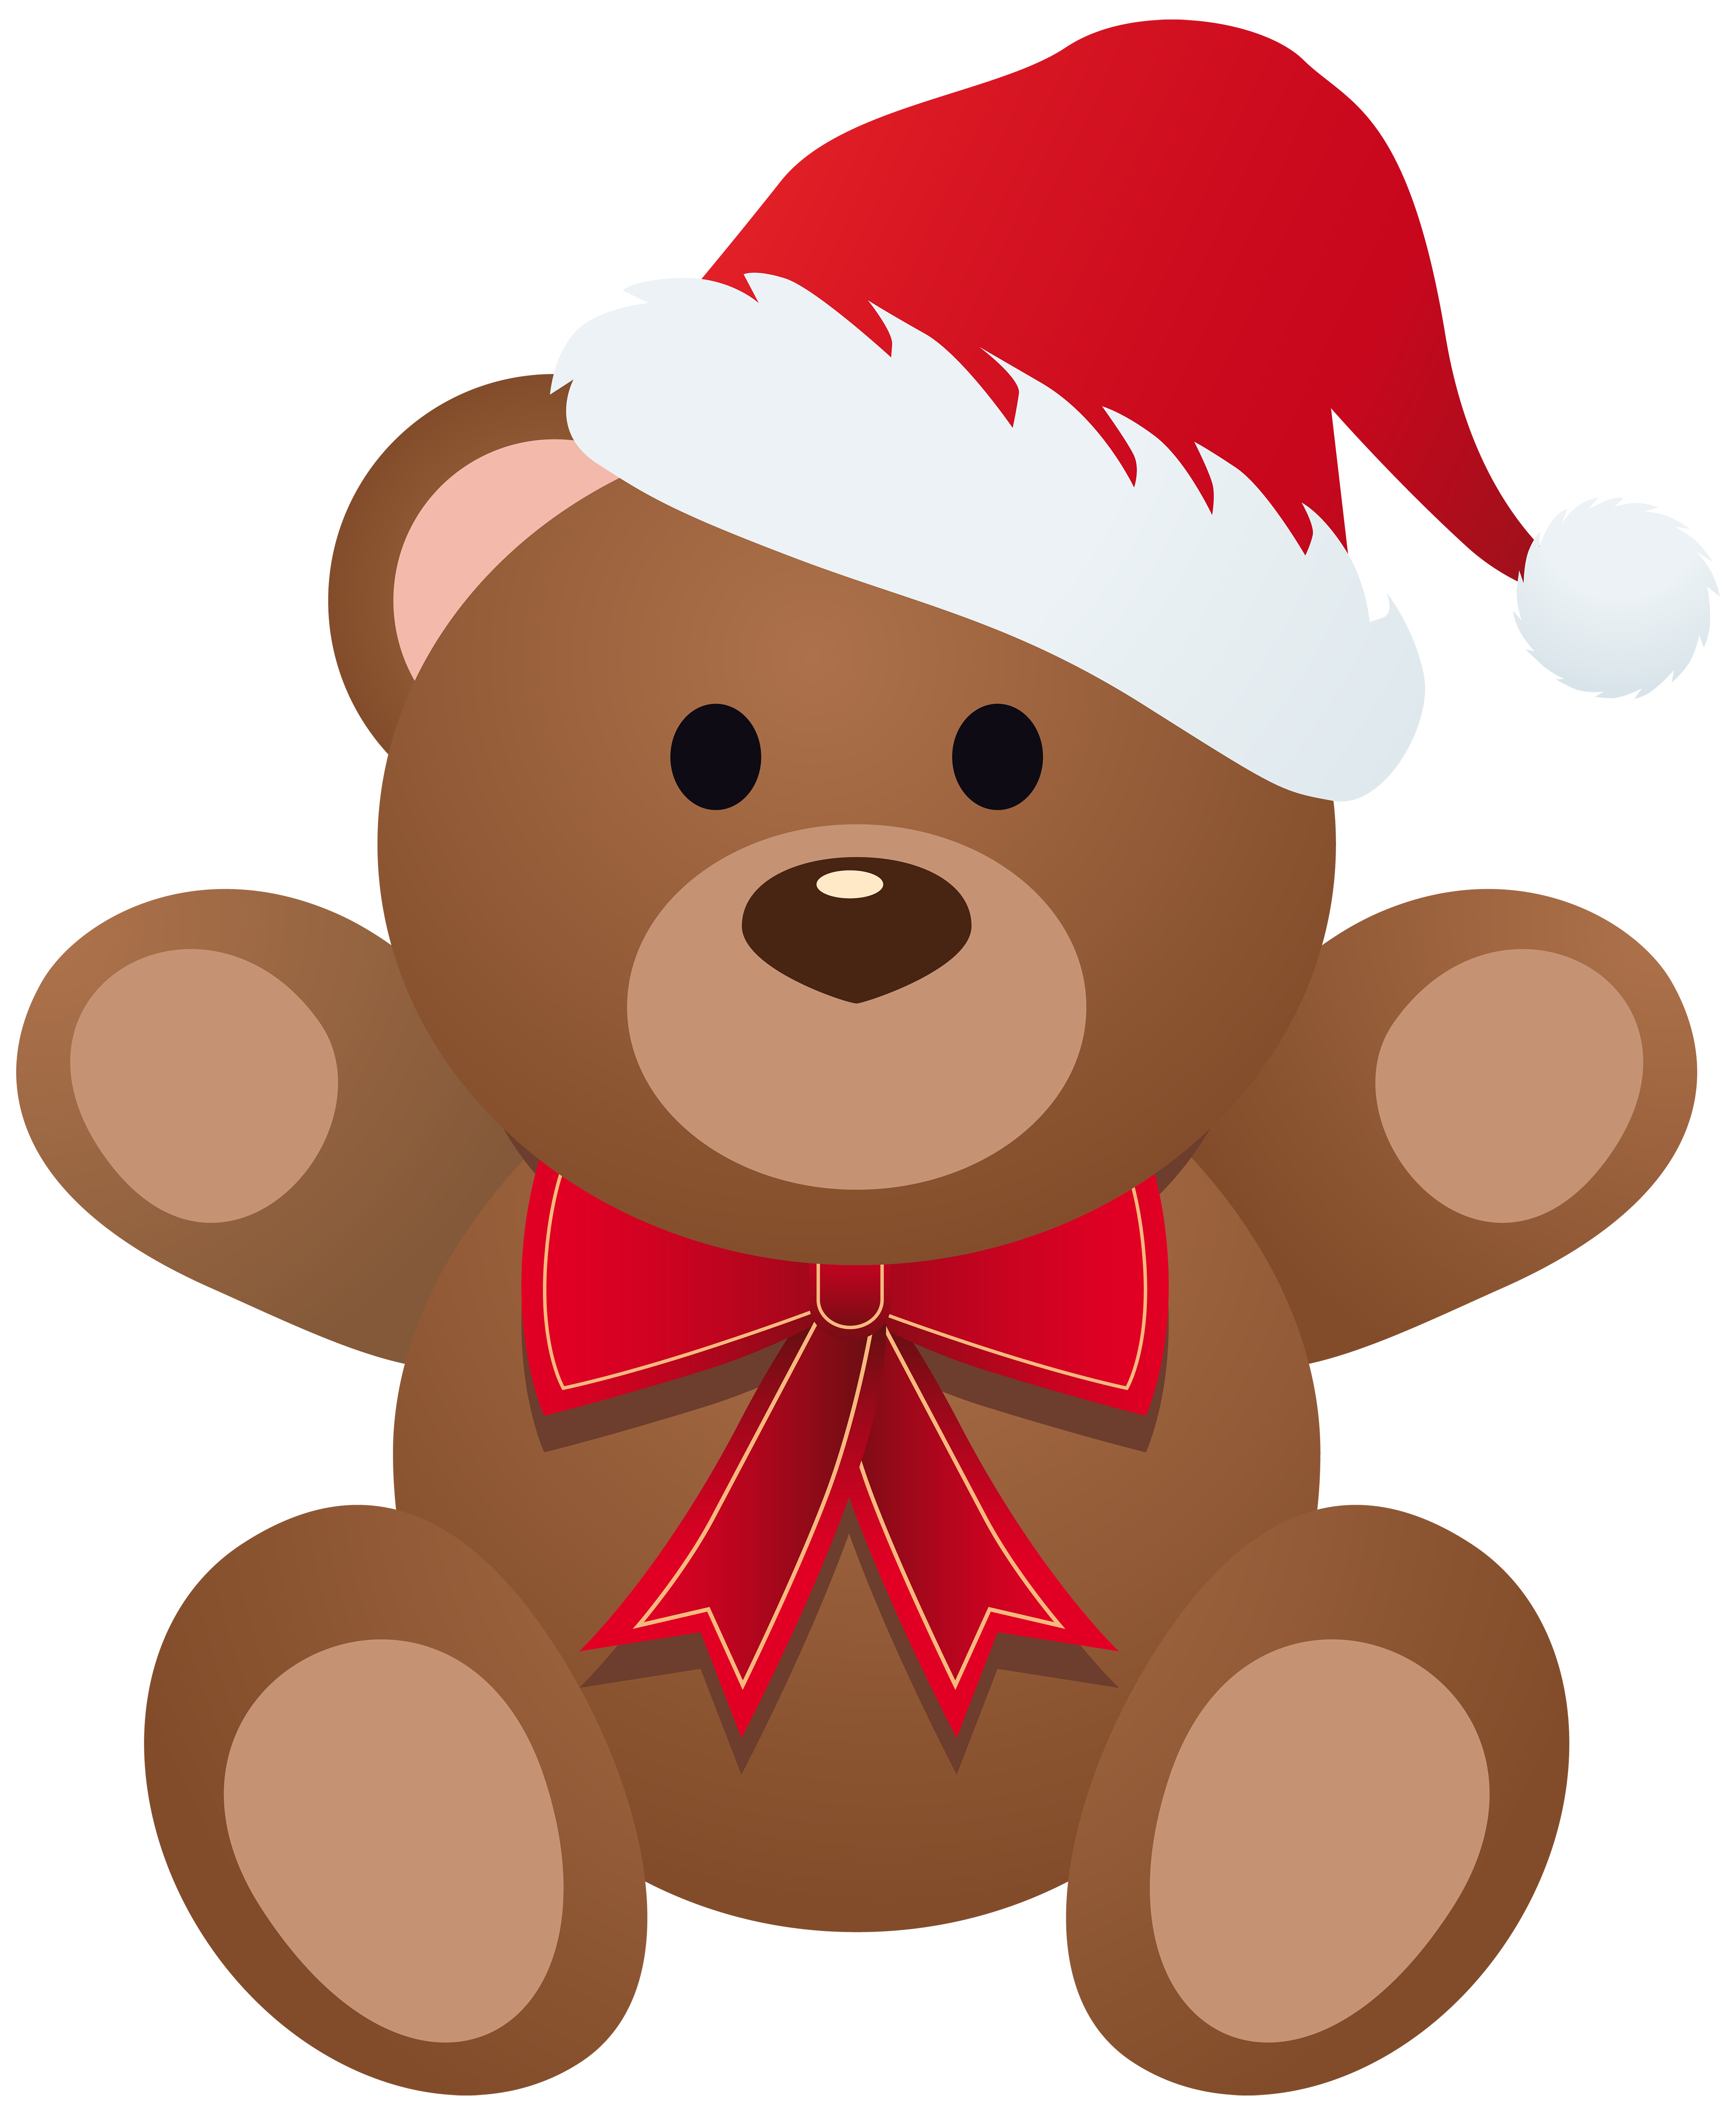 Christmas Teddy PNG Clipart Image.